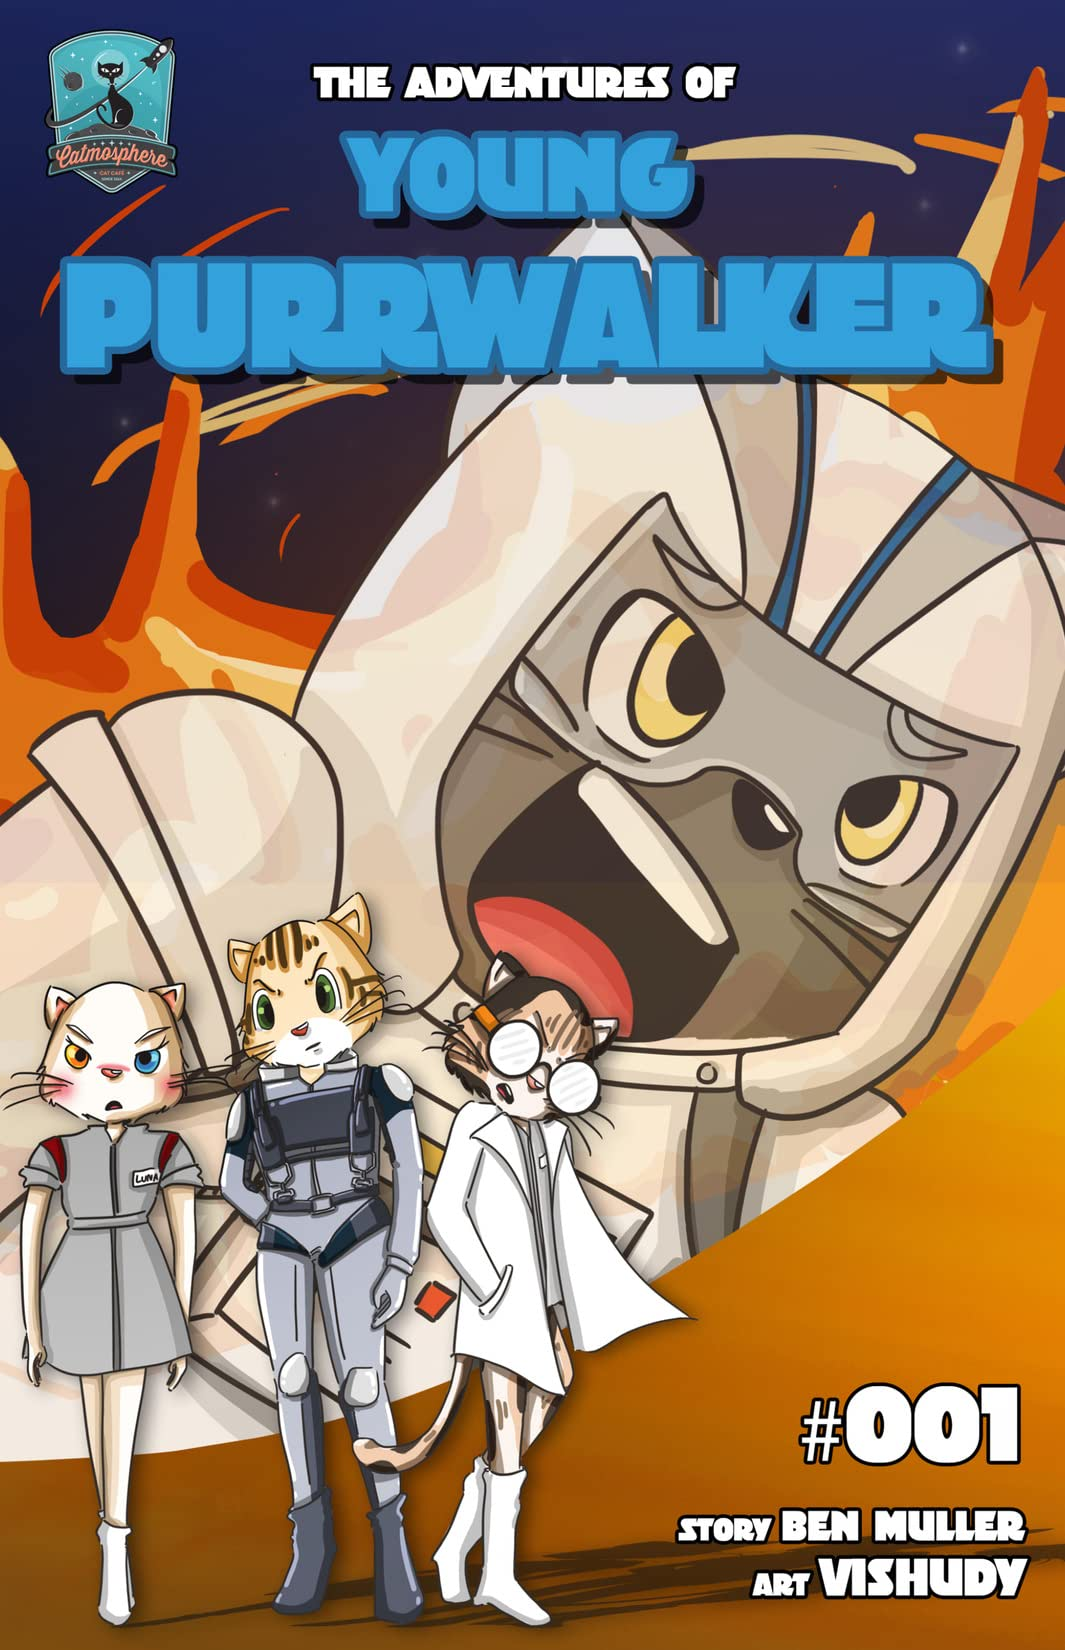 The Adventures of Young Purrwalker #1